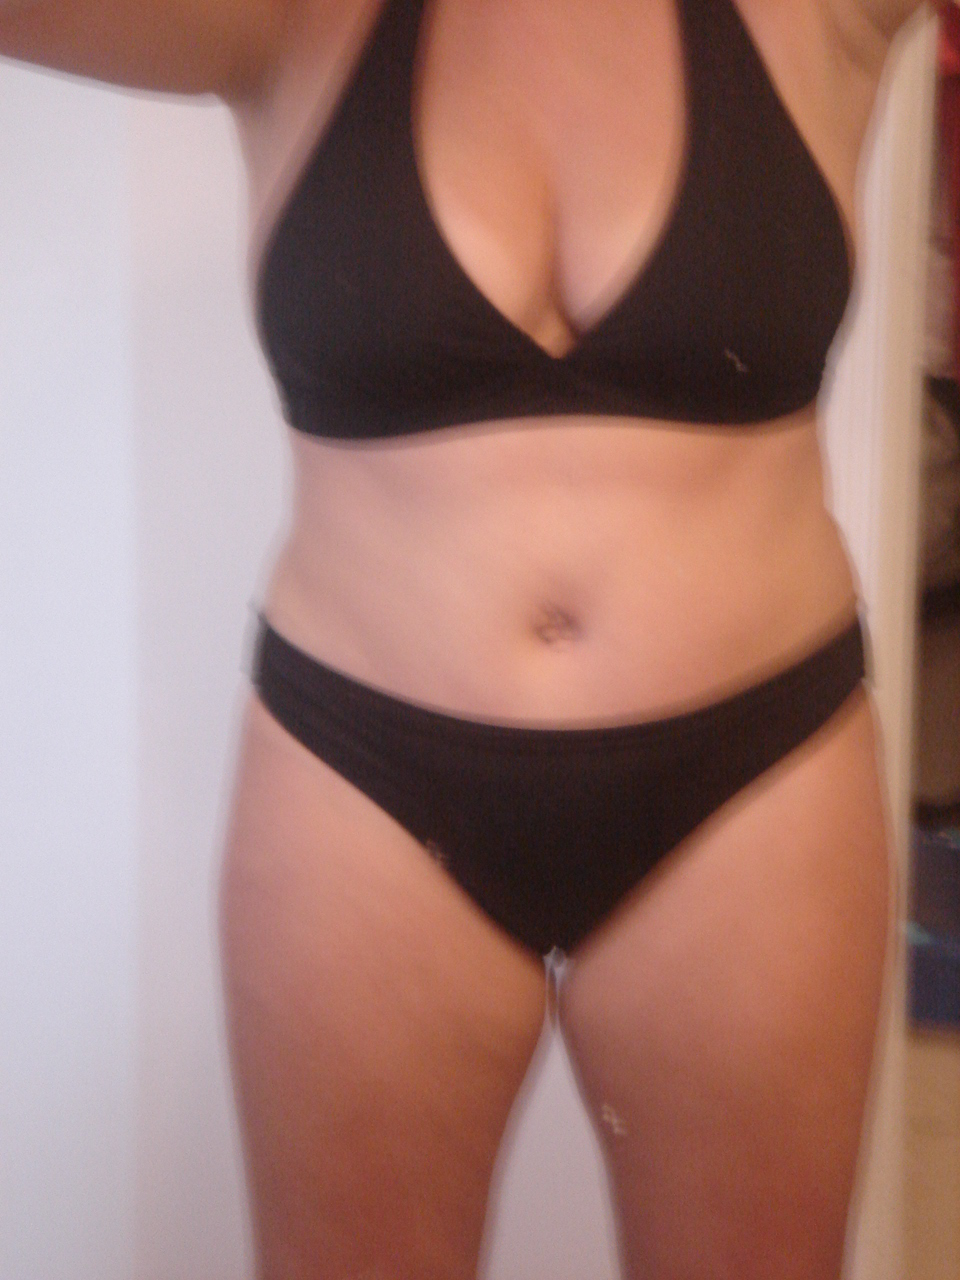 Day 17 post op Bikini